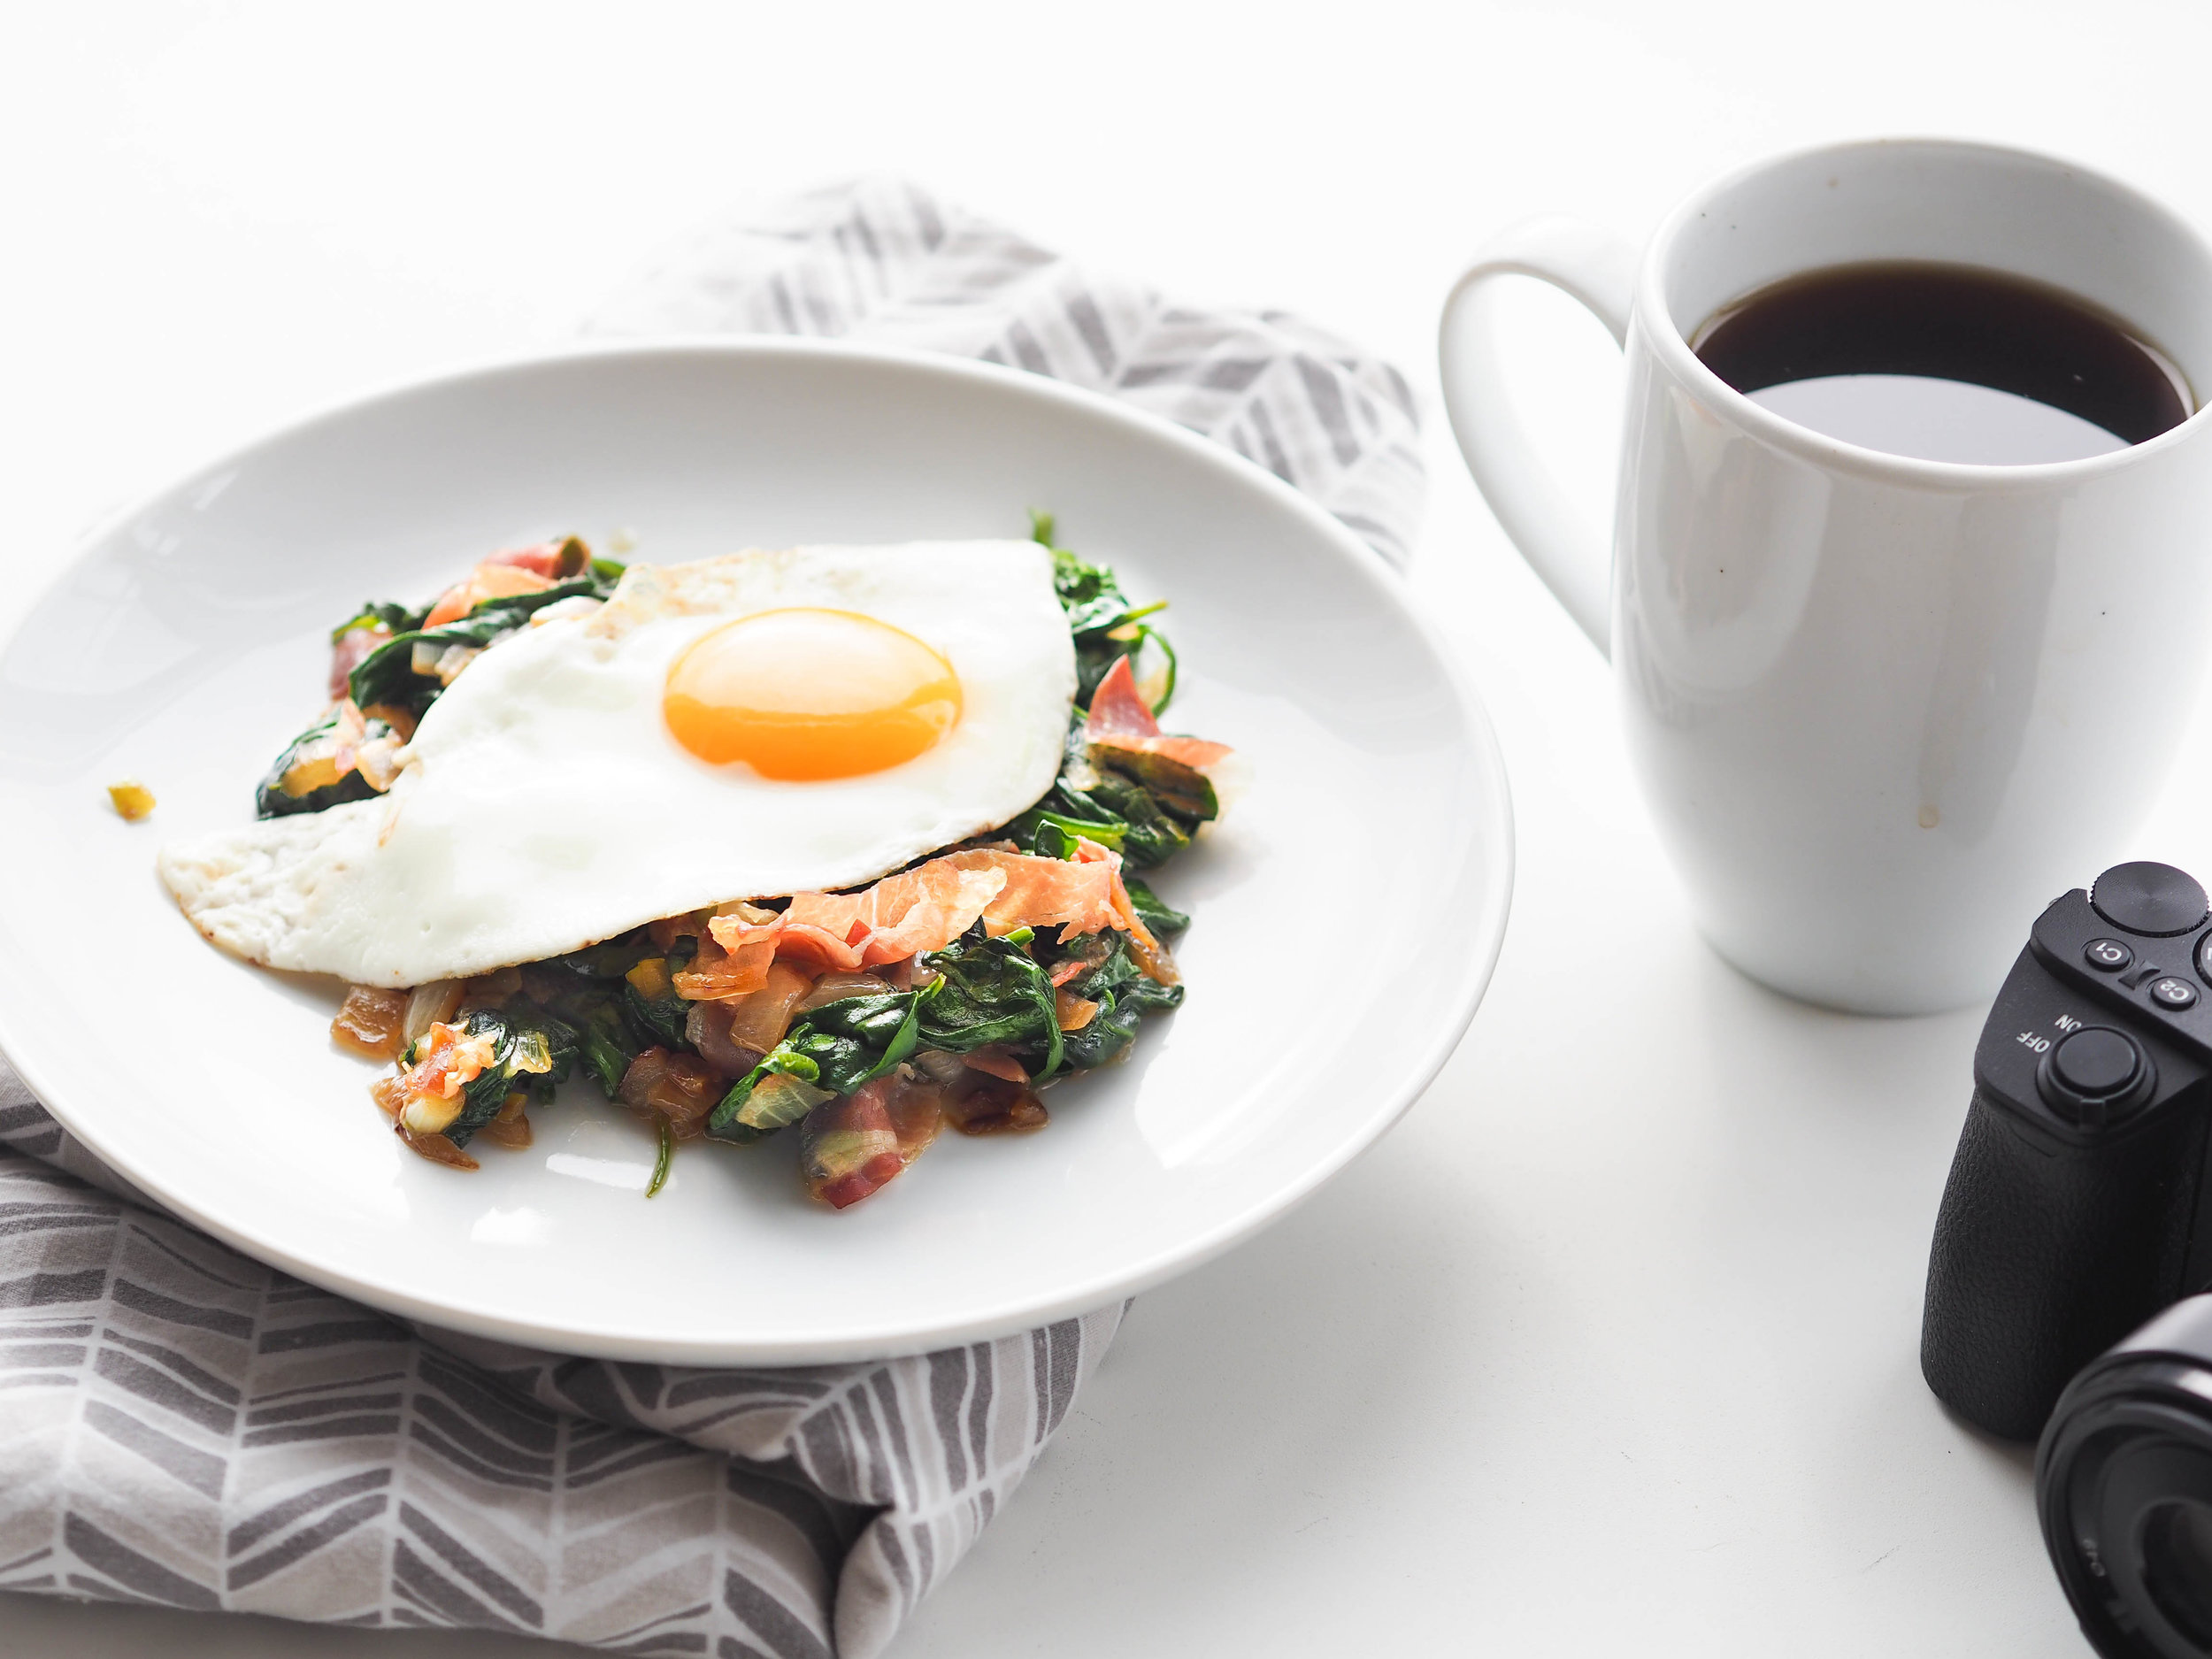 Sauteed Spinach and A Sunny Egg